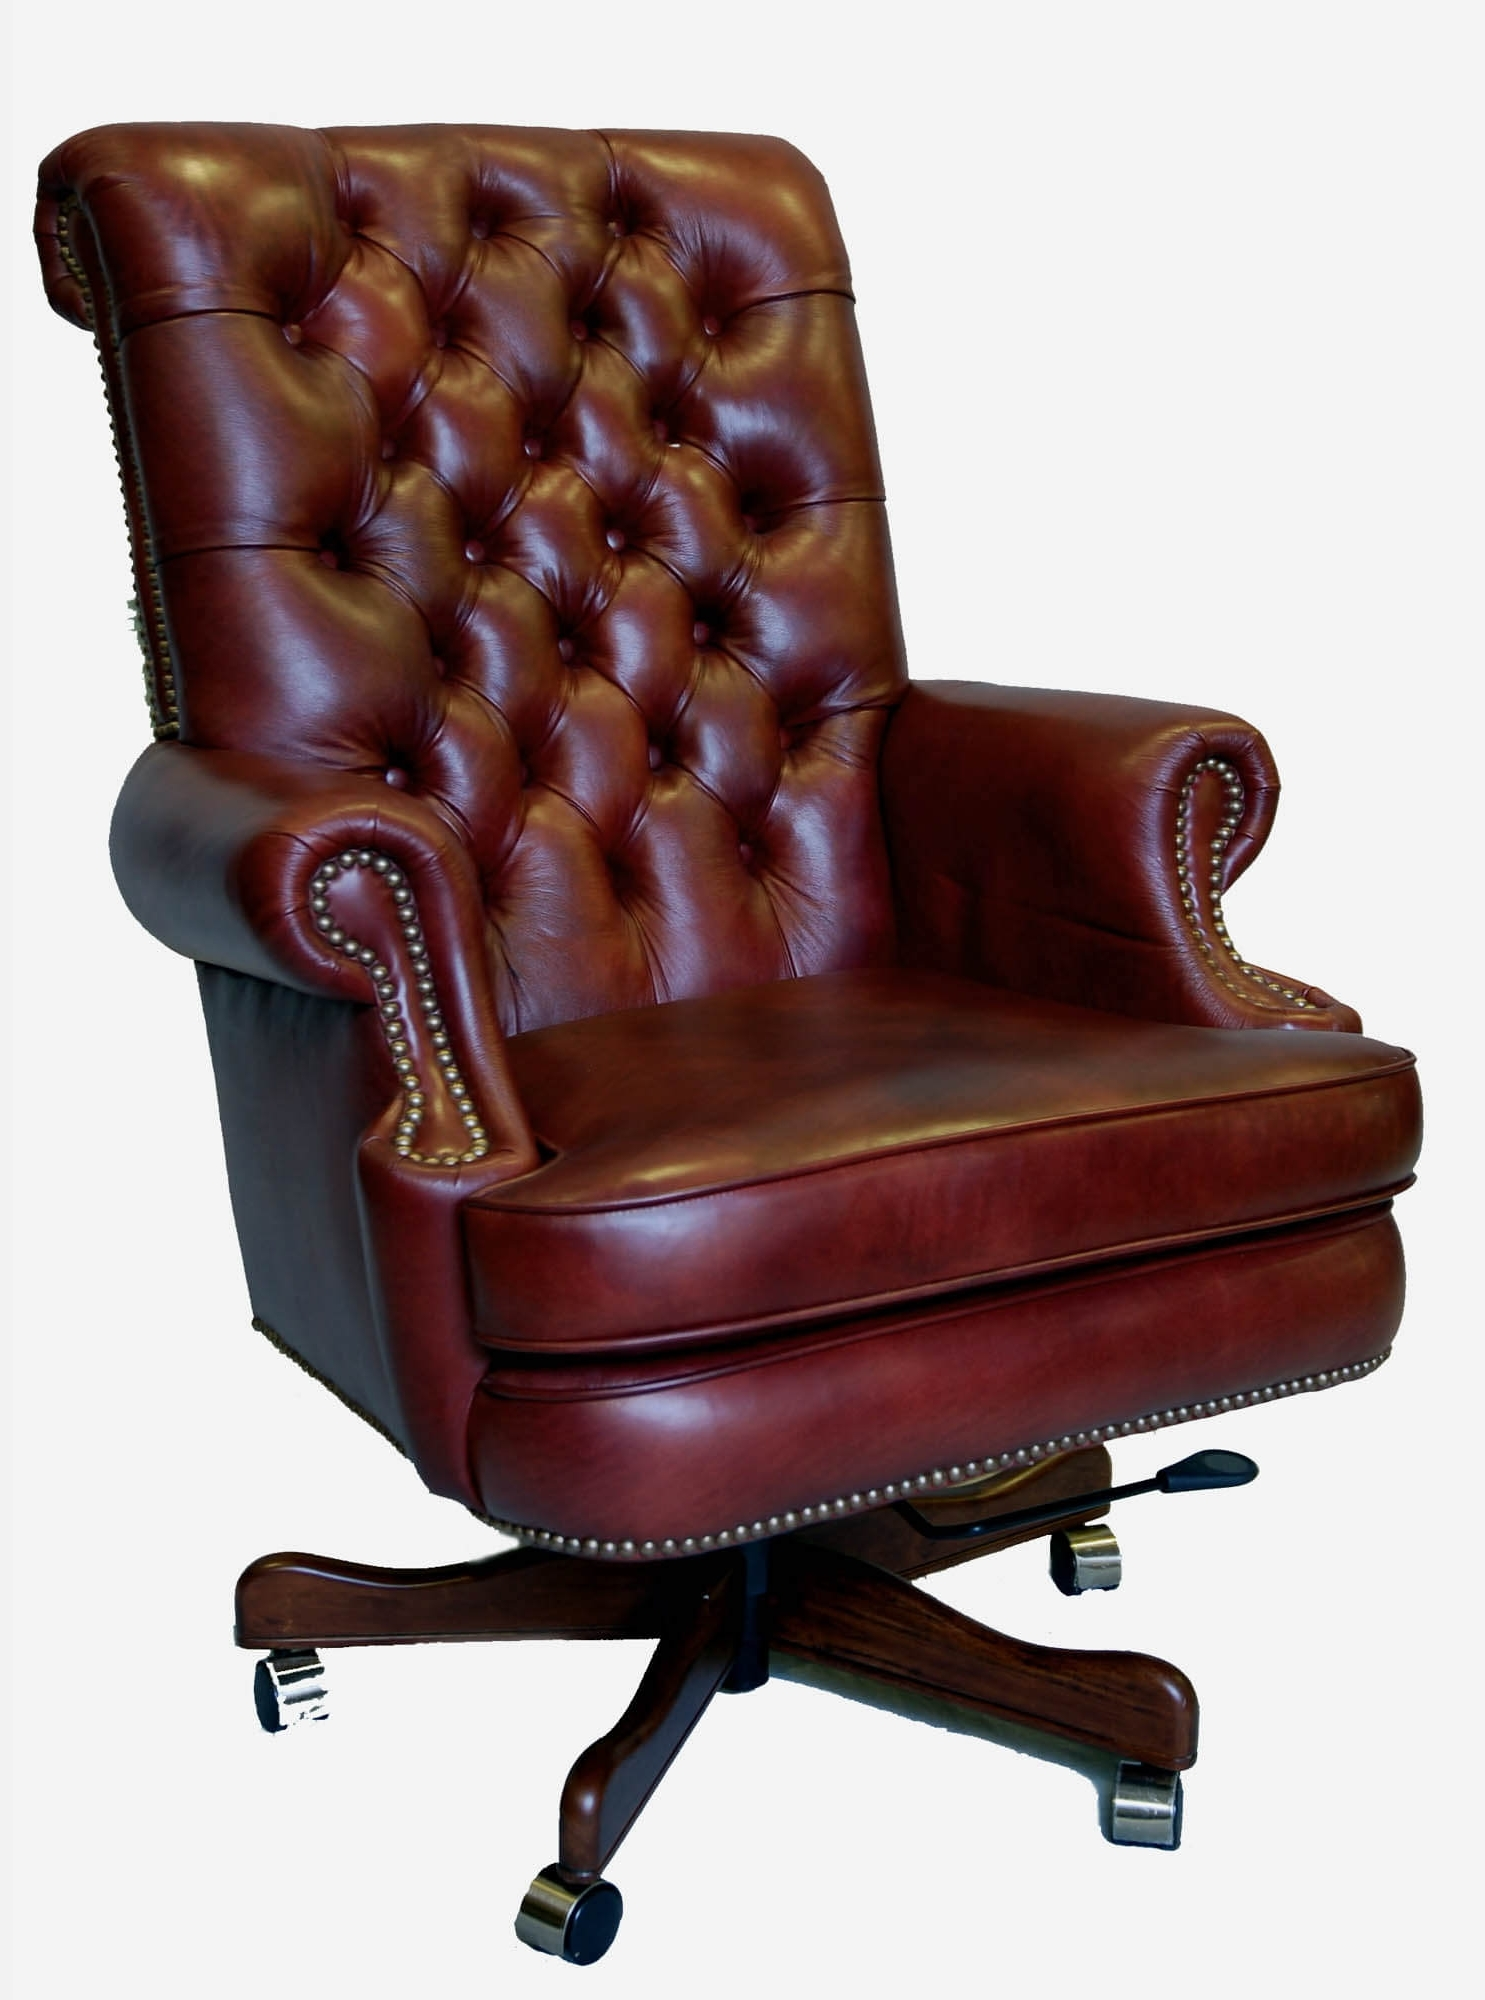 Office Chair Guide & How To Buy A Desk Chair + Top 10 Chairs Within Famous Traditional Executive Office Chairs (View 2 of 20)